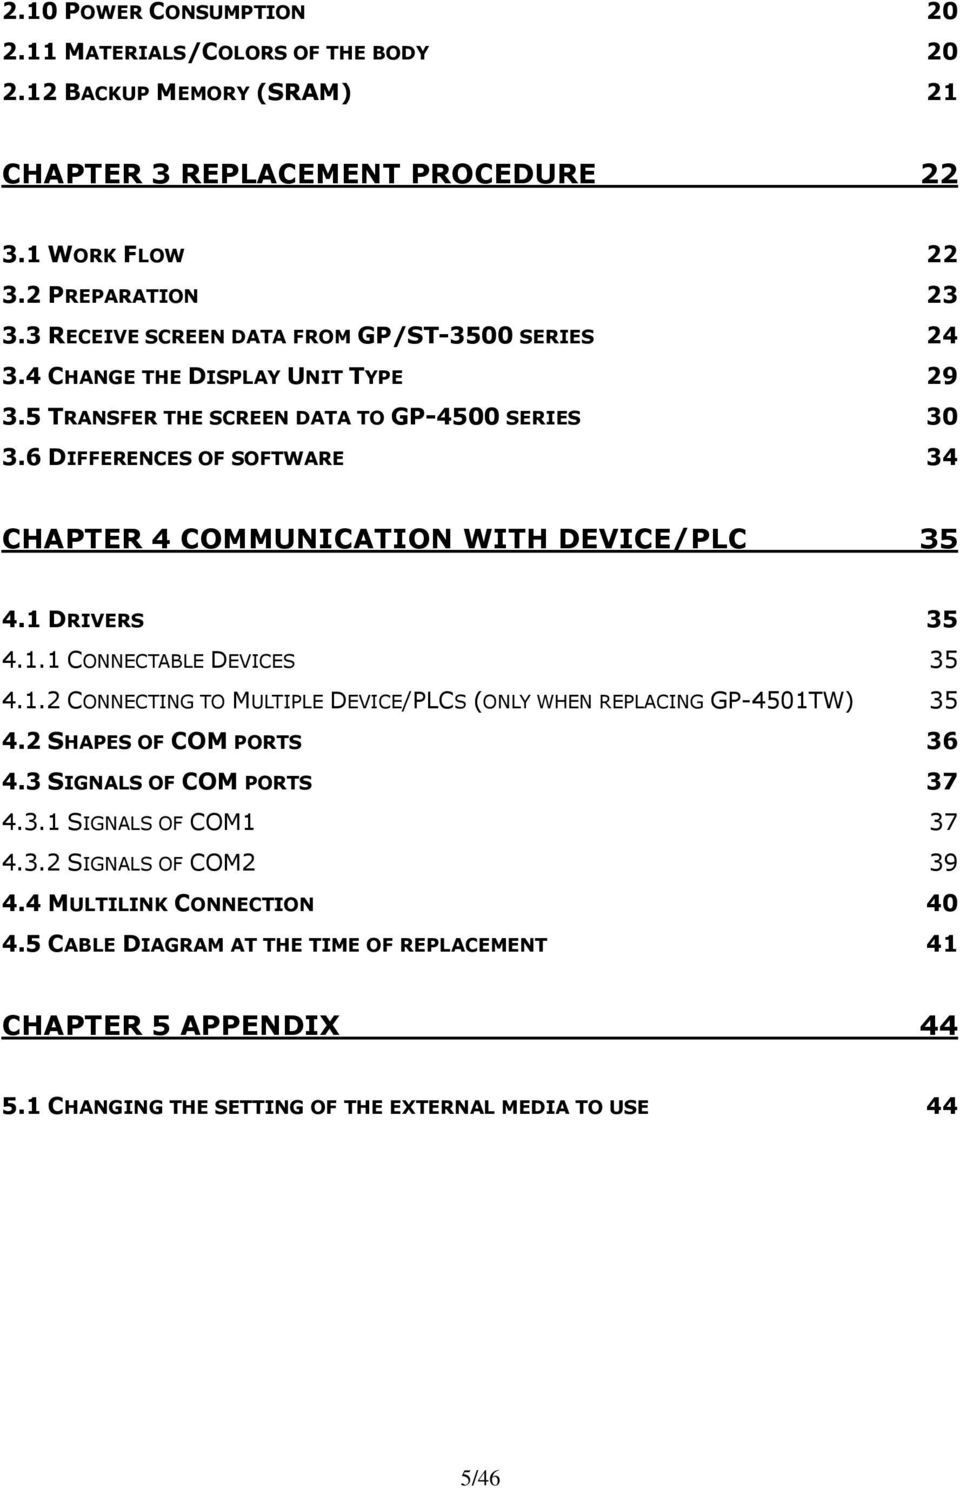 6 DIFFERENCES OF SOFTWARE 34 CHAPTER 4 COMMUNICATION WITH DEVICE/PLC 35 4.1 DRIVERS 35 4.1.1 CONNECTABLE DEVICES 35 4.1.2 CONNECTING TO MULTIPLE DEVICE/PLCS (ONLY WHEN REPLACING GP-4501TW) 35 4.